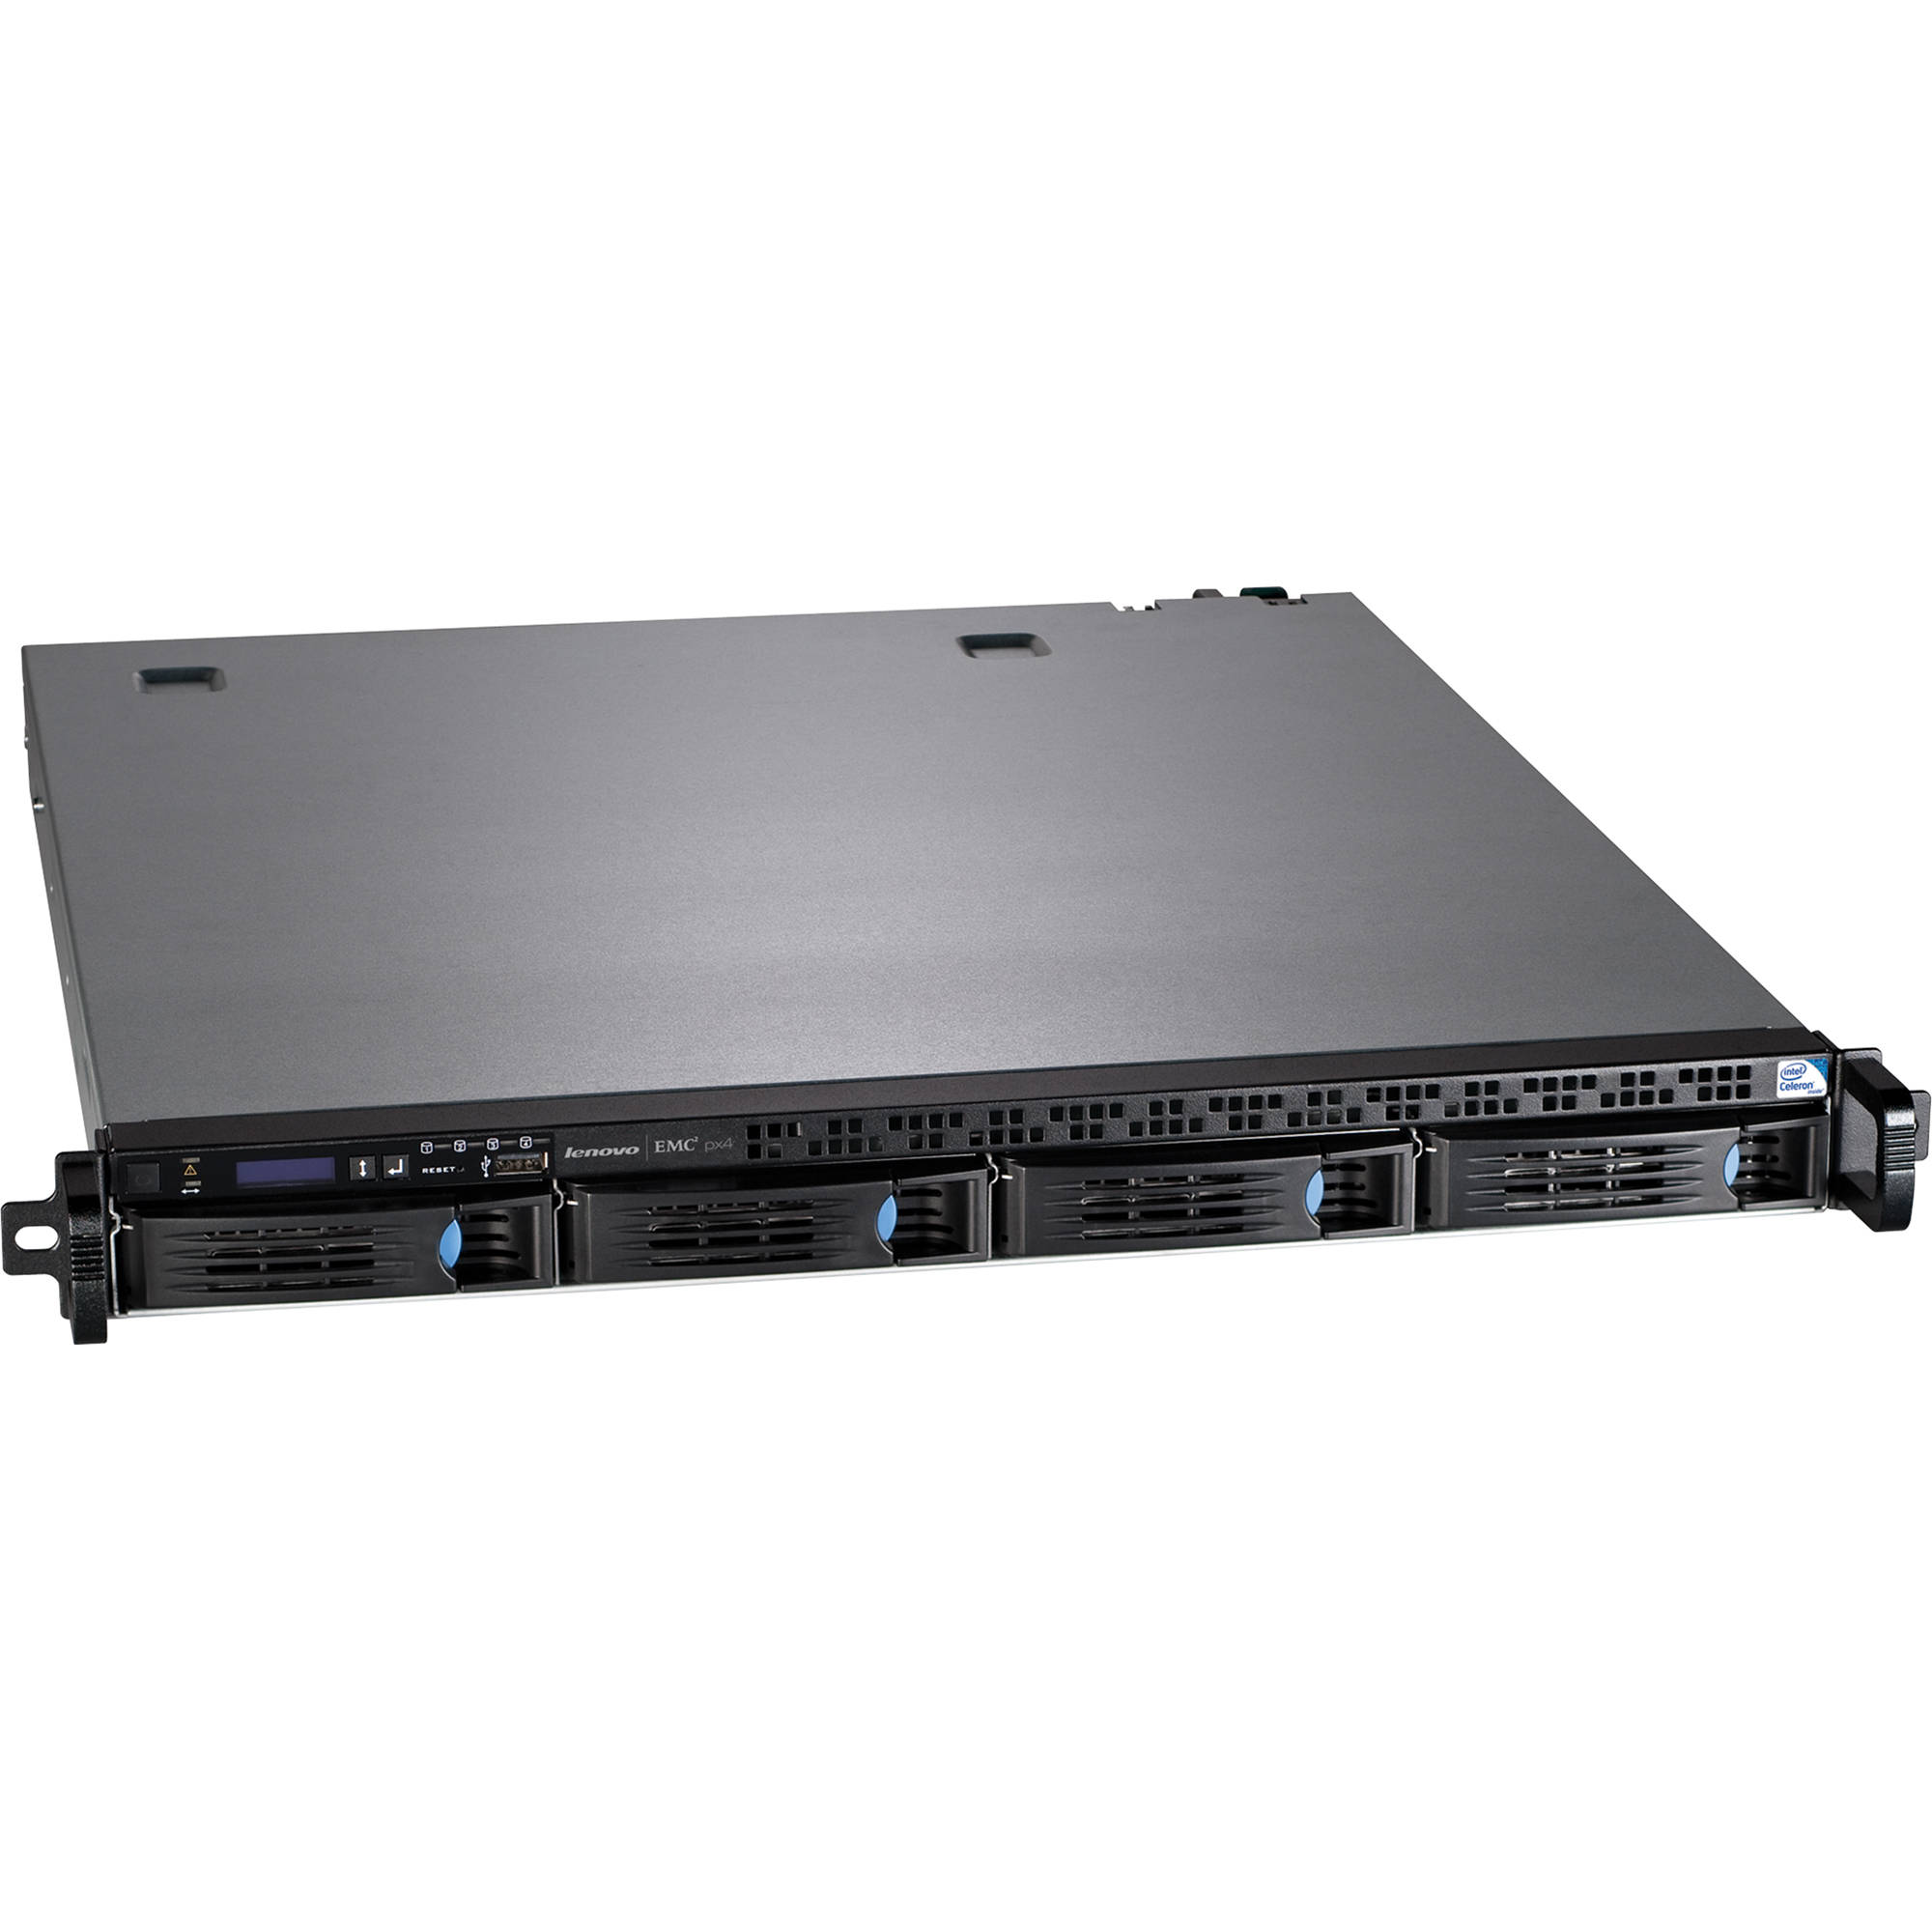 LenovoEMC Px4 300r 4 Bay Network Storage 16TB